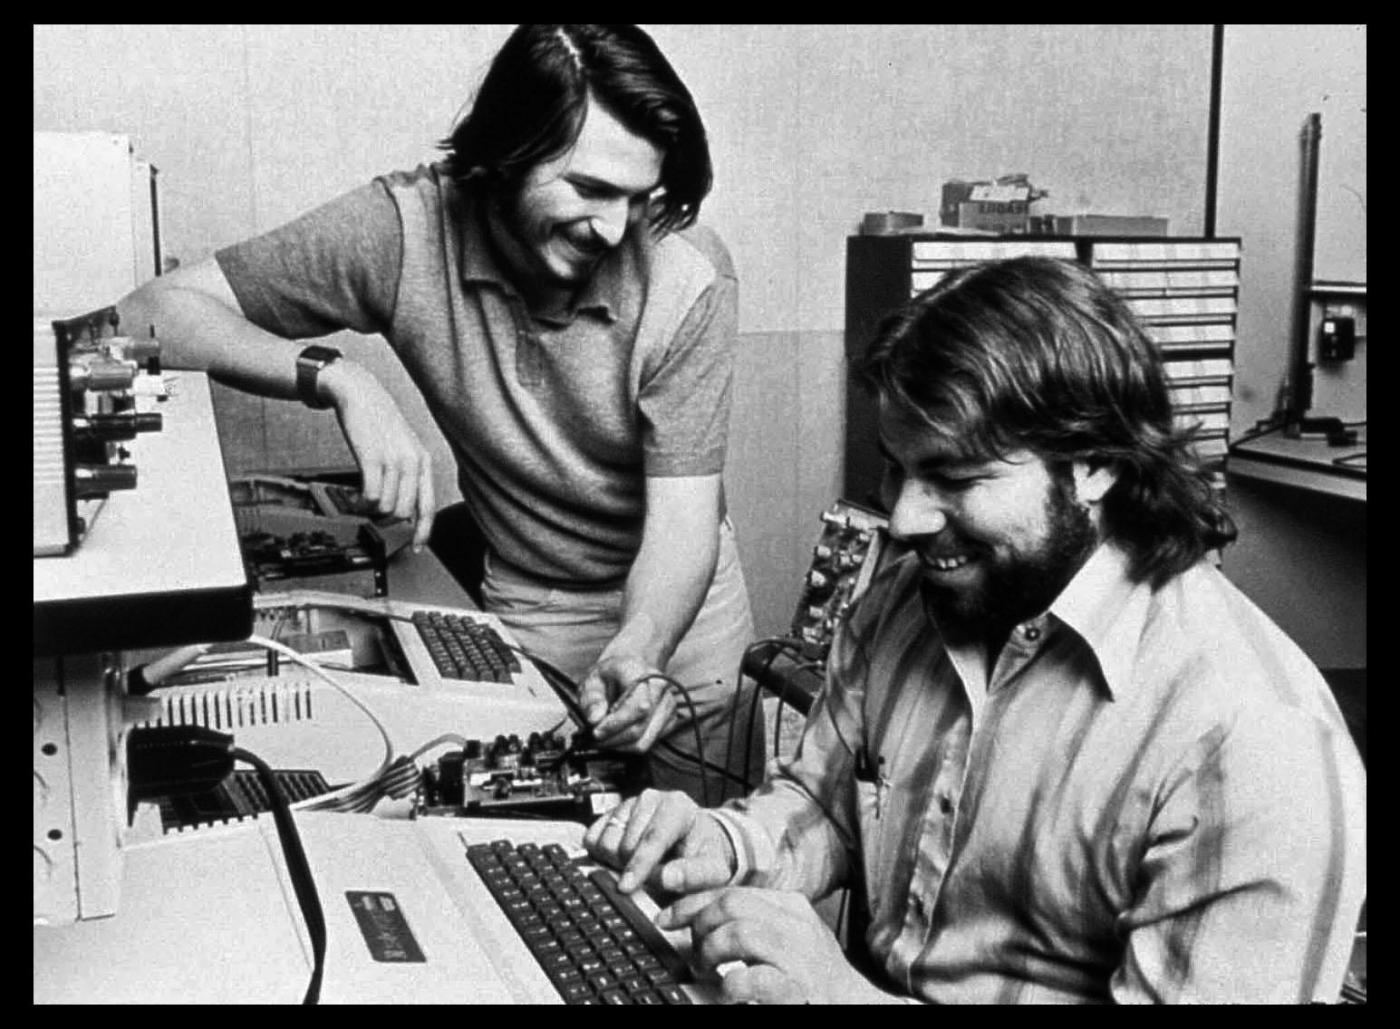 These juvenile delinquent wrecks ended up changing the computer industry.  Apple founders Steve Jobs and Steve Wozniak in 1976, working in an early Apple hq located in the garage of Jobs' parents.